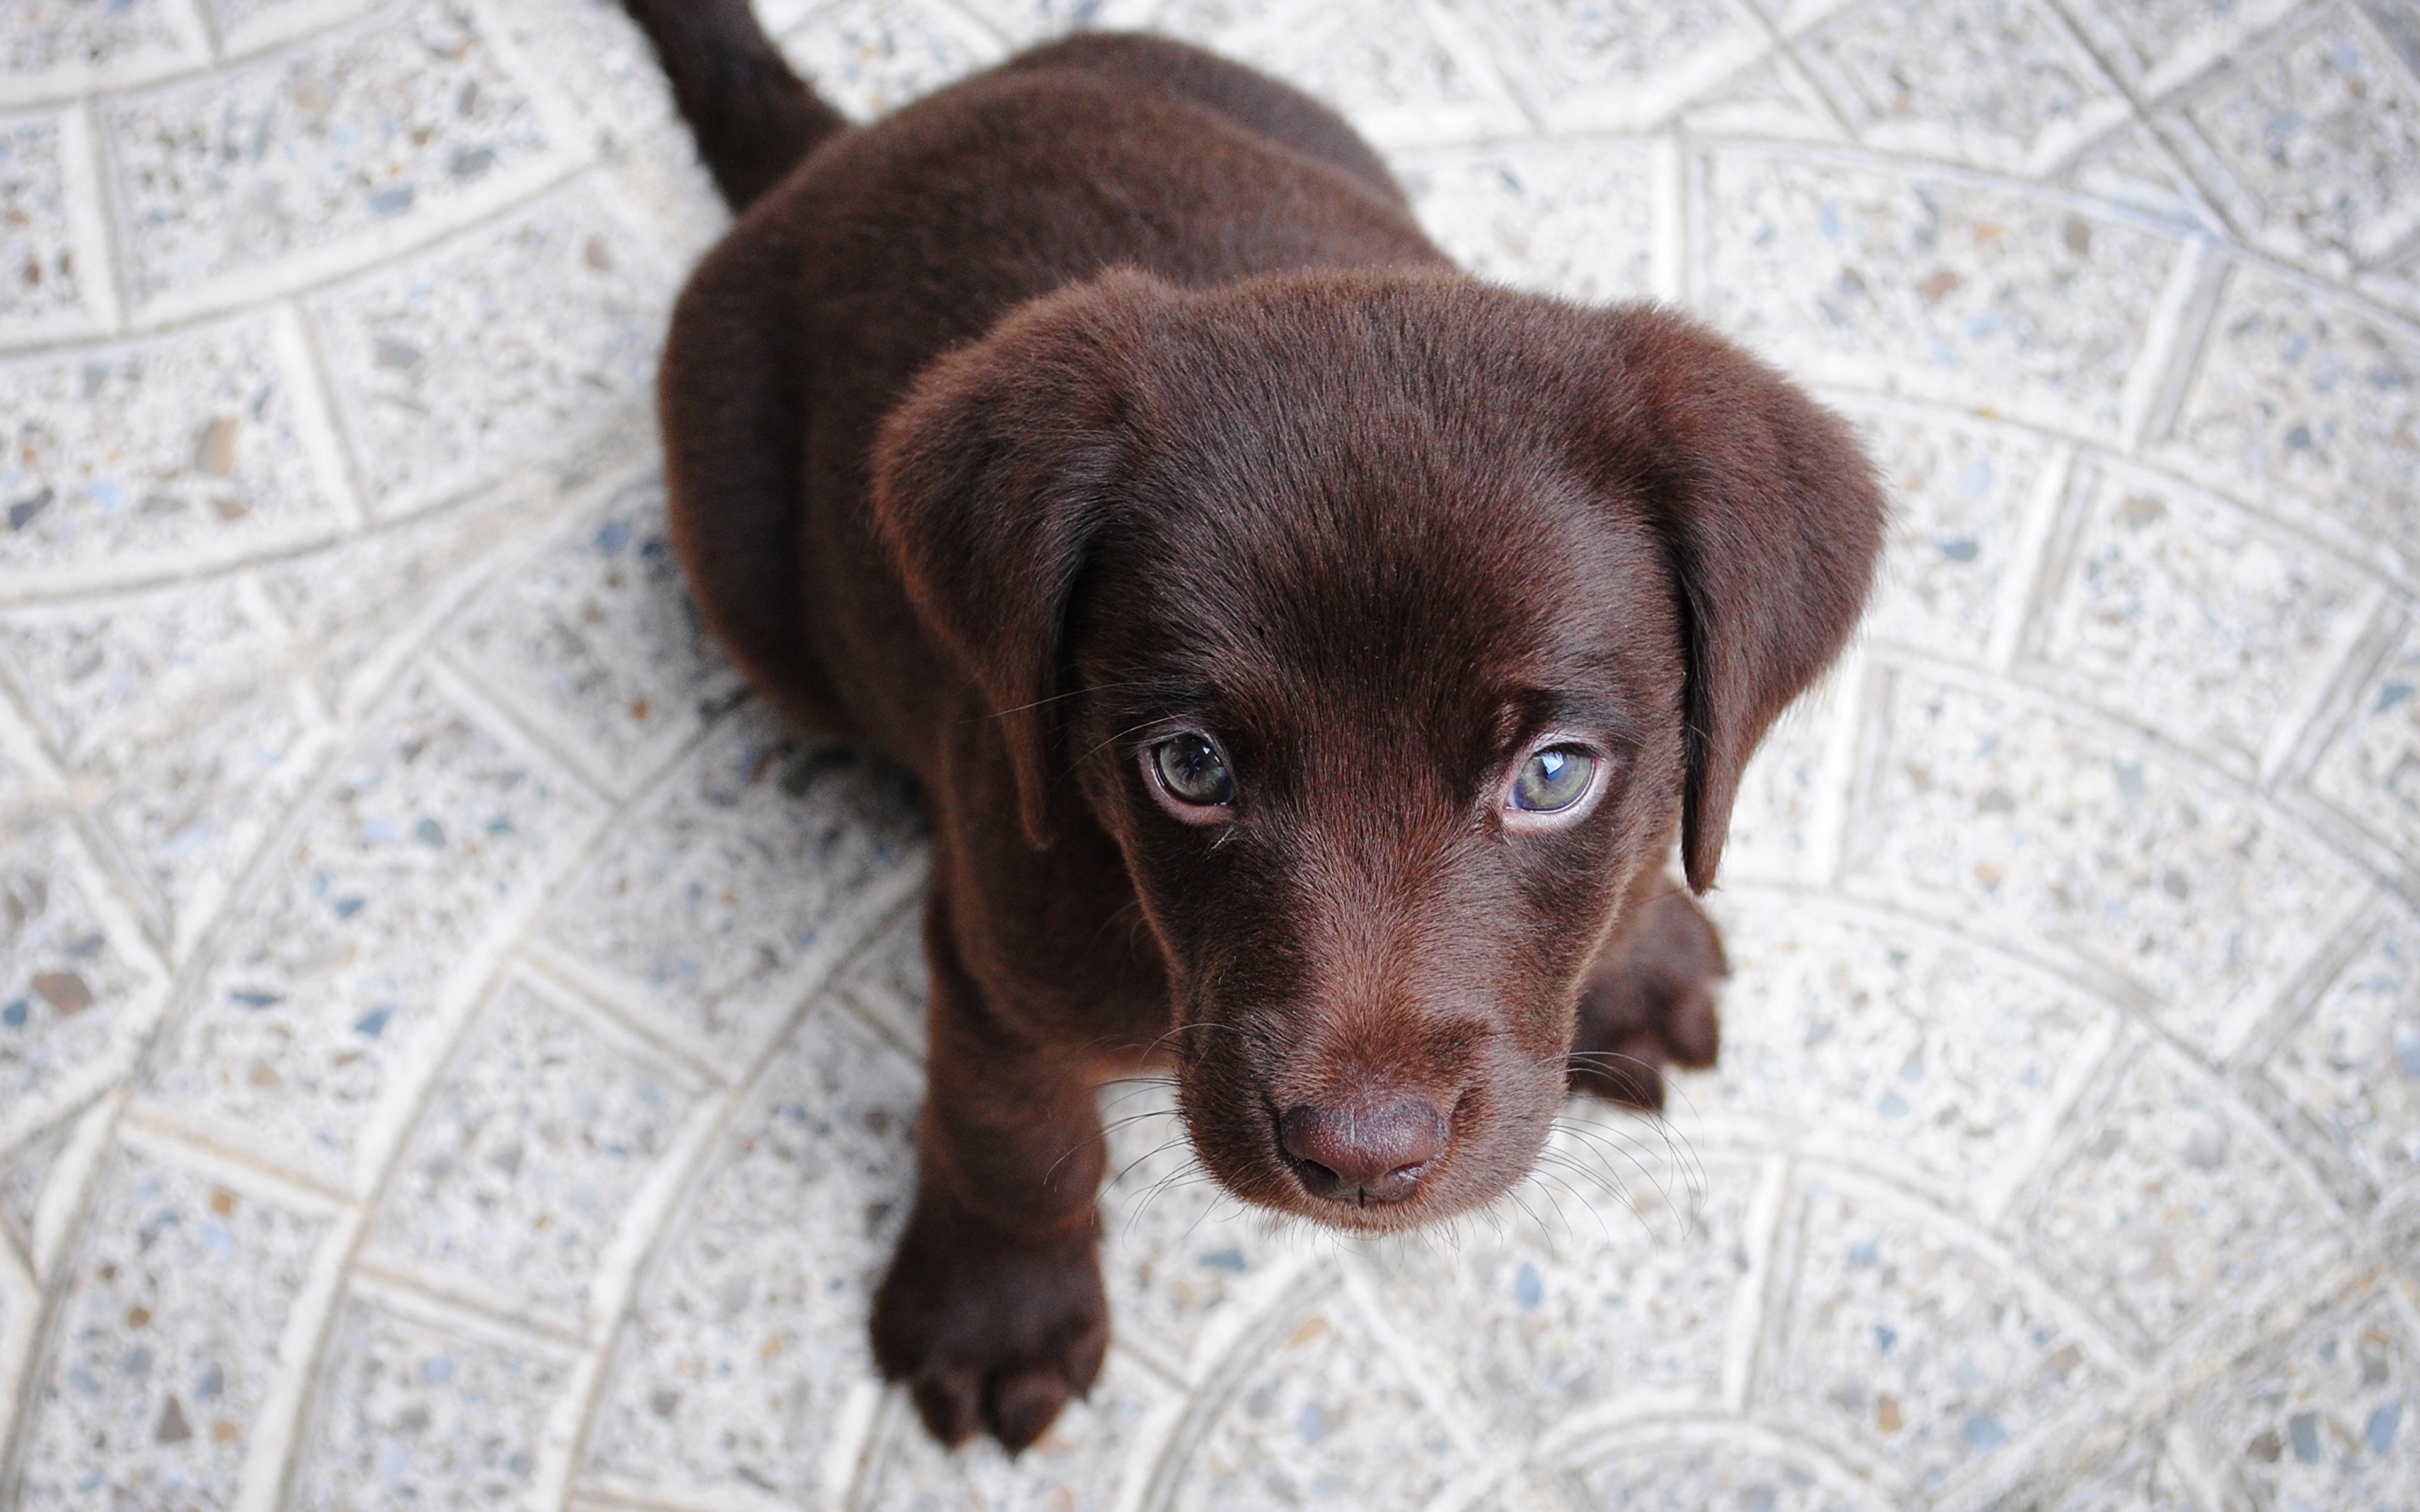 Photos Puppy Labrador Retriever Dogs From above animal Staring 3840x2400 puppies dog Glance Animals